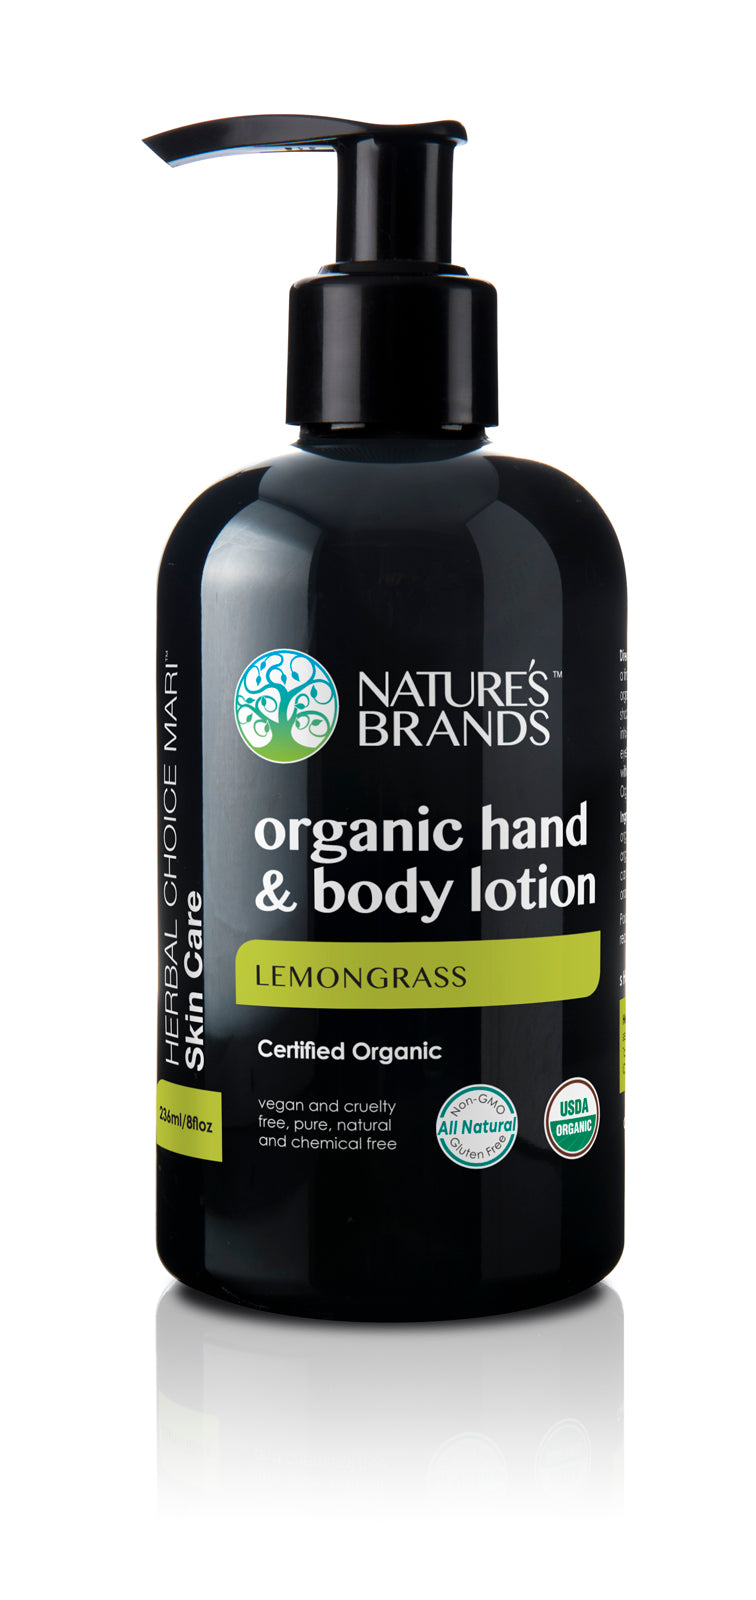 Herbal Choice Mari Organic Hand And Body Lotion, Lemongrass - Herbal Choice Mari Organic Hand And Body Lotion, Lemongrass - Herbal Choice Mari Organic Hand And Body Lotion, Lemongrass